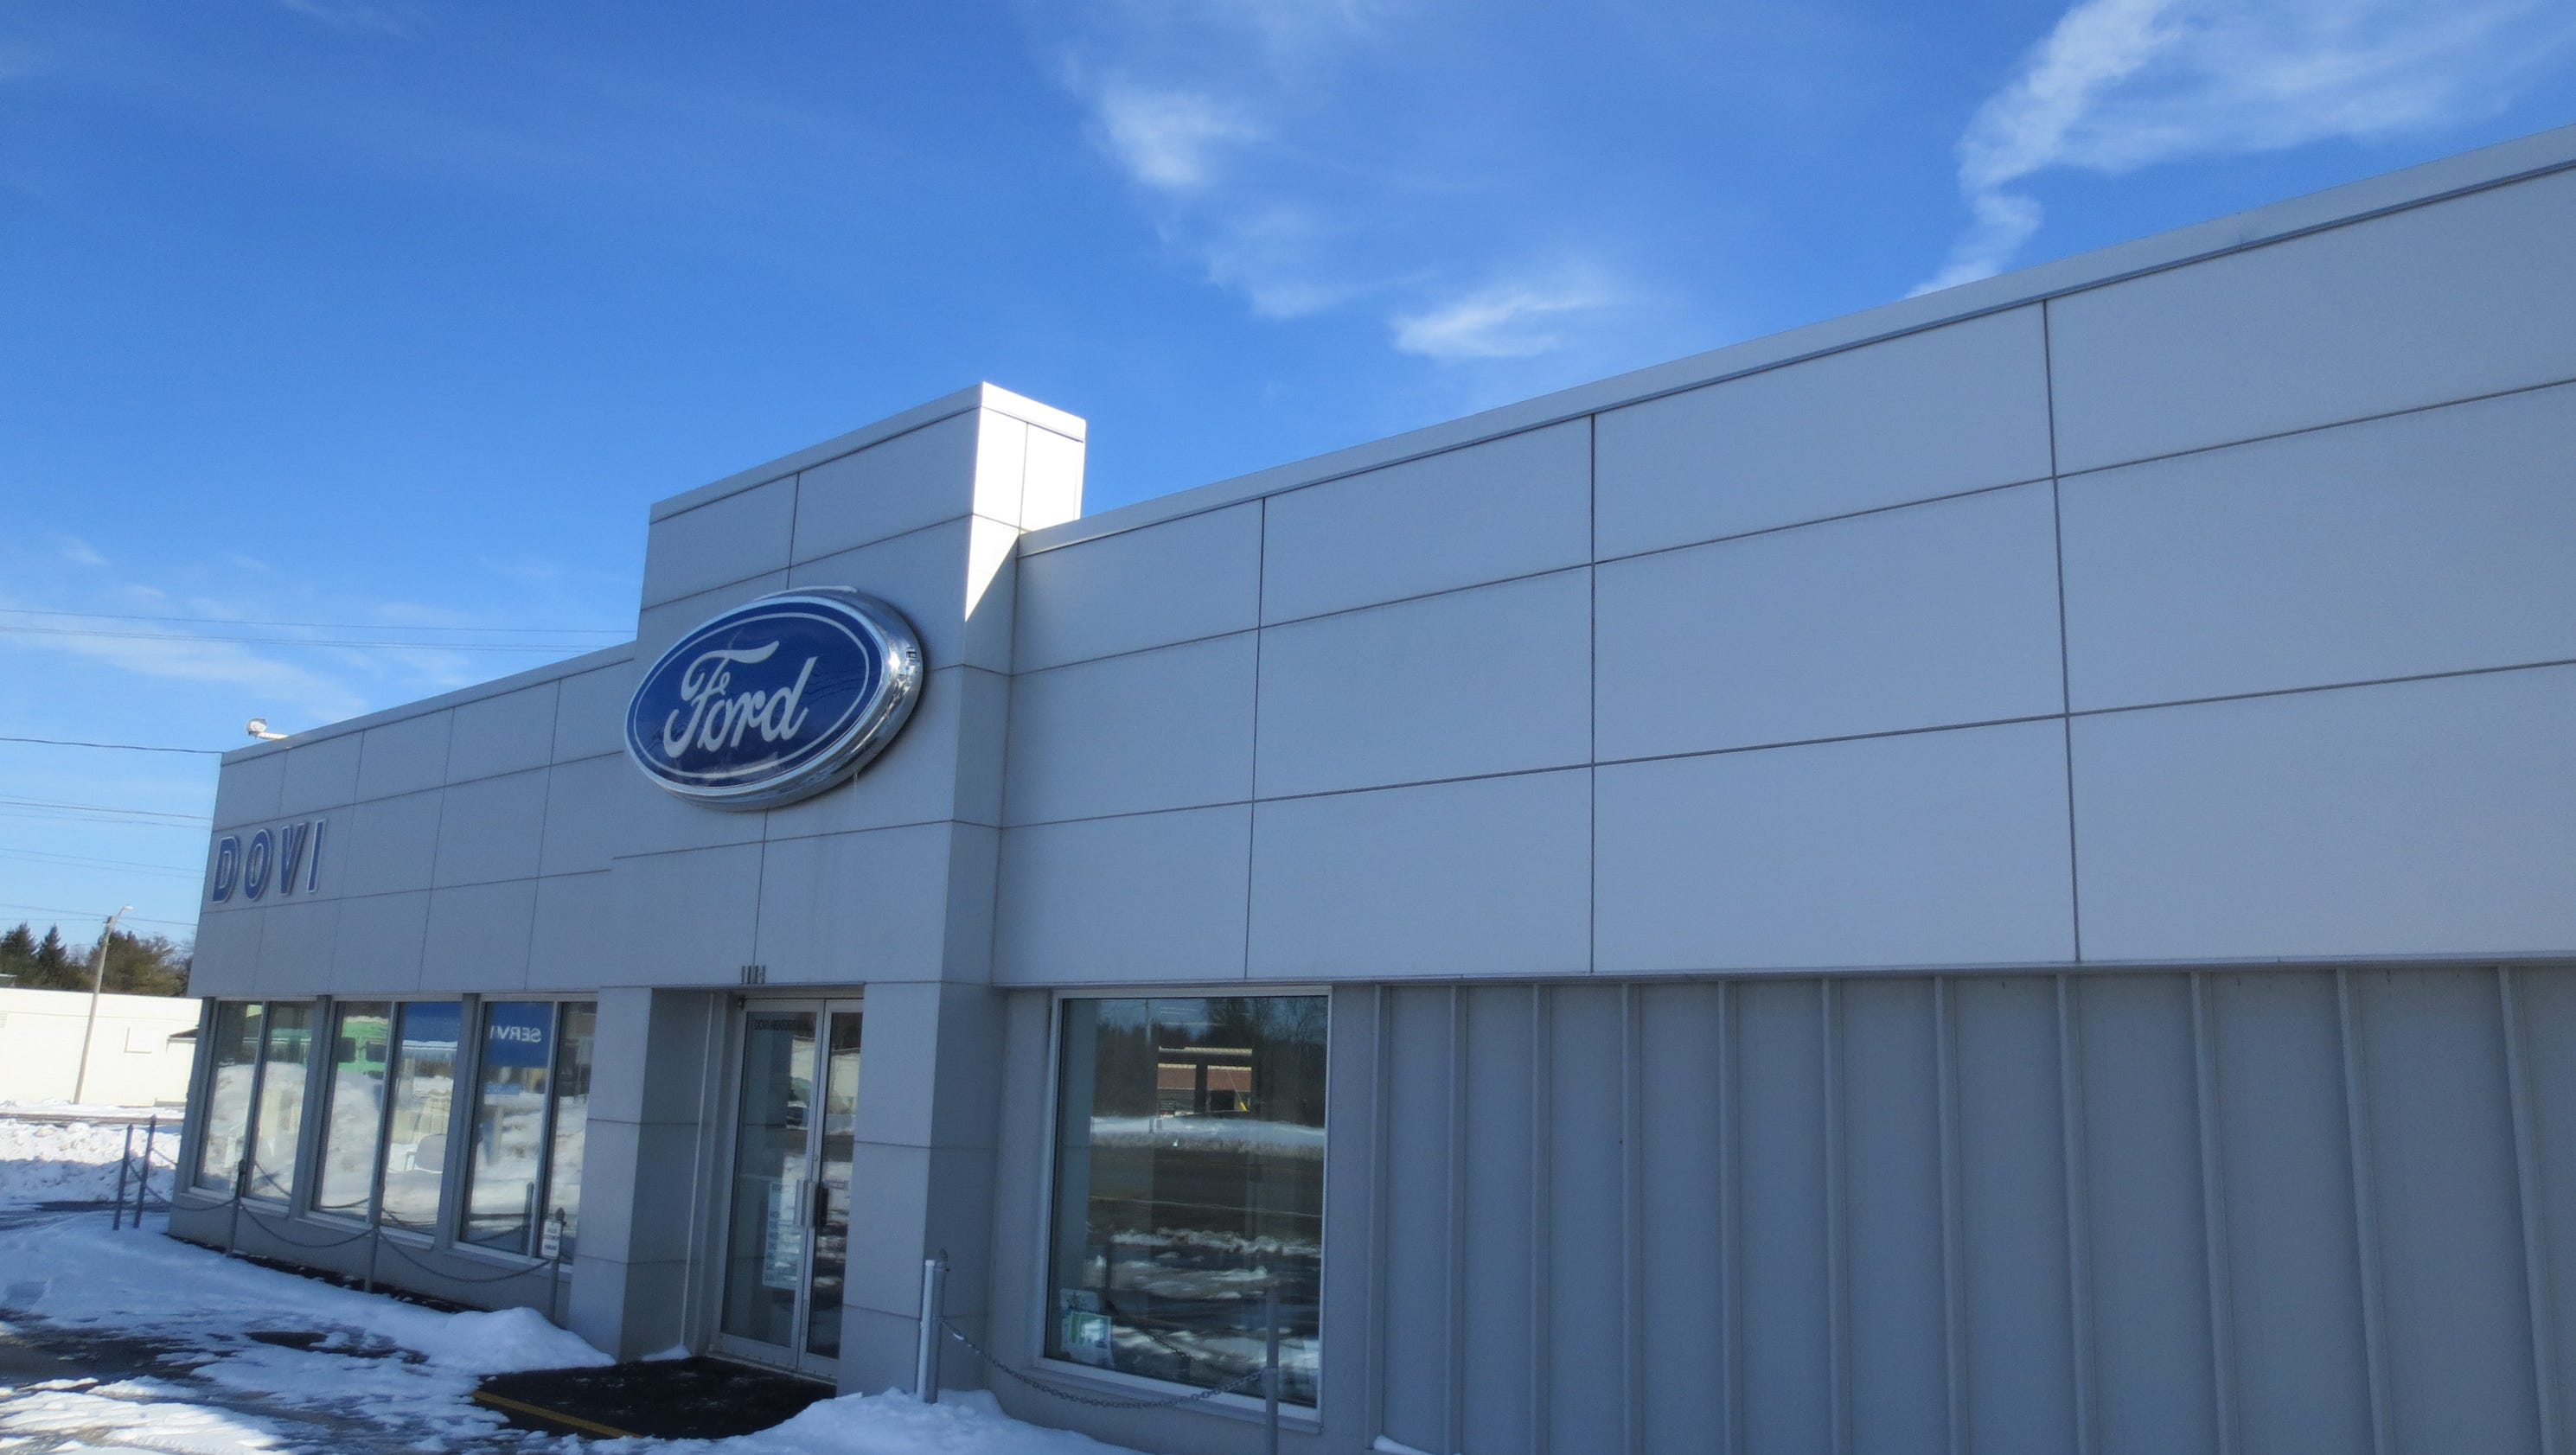 Car Dealerships Boise >> Consistency, adaptability key for lasting dealerships